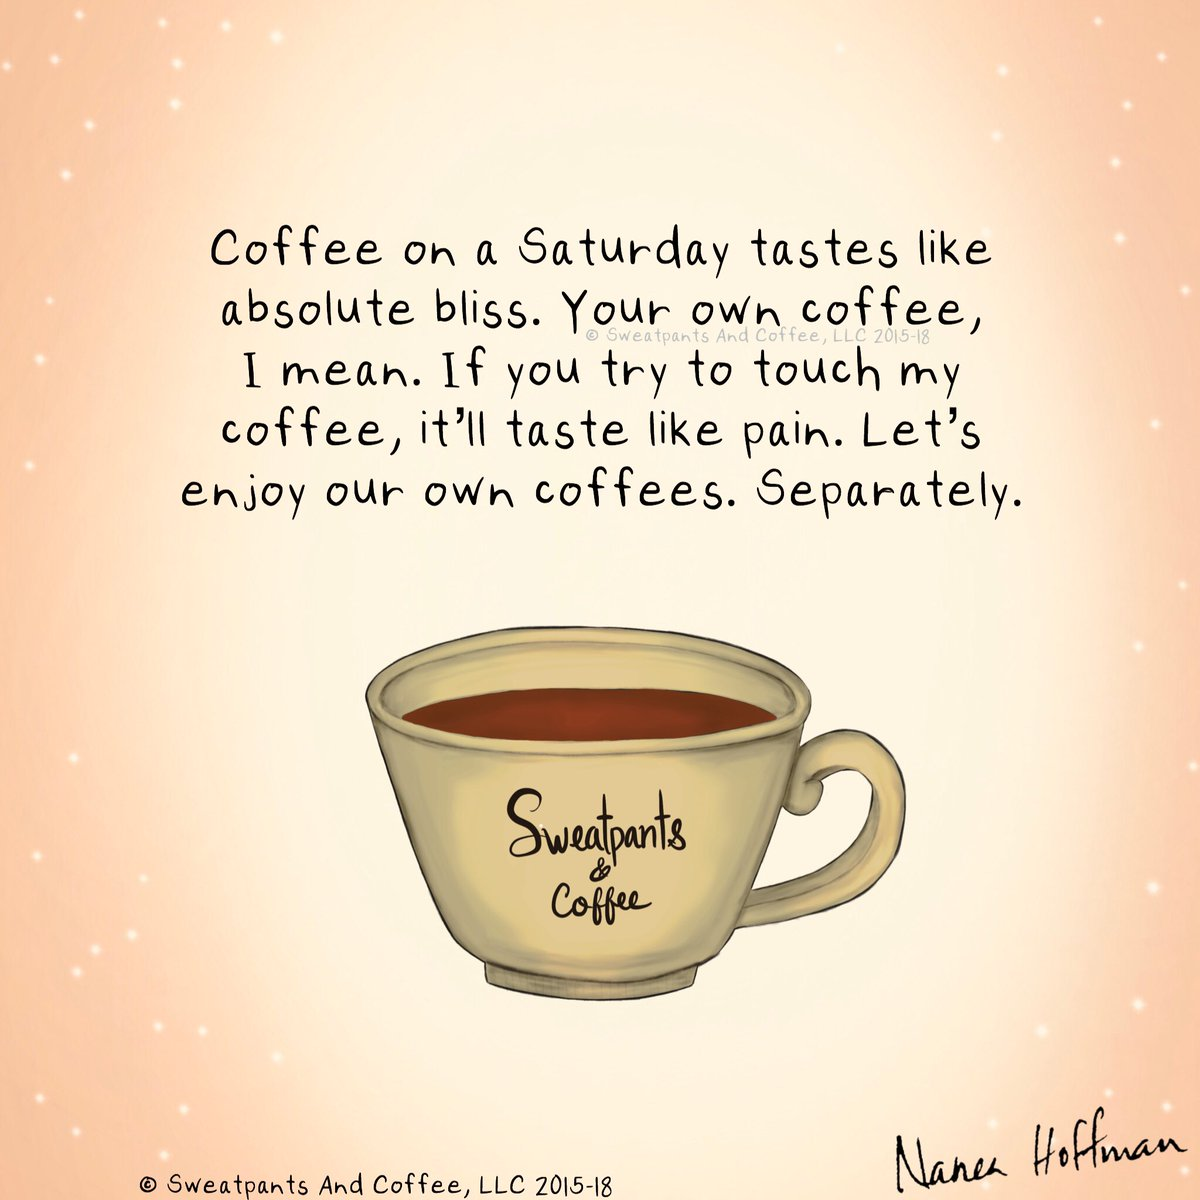 "Sweatpants & Coffee on Twitter: ""Happy weekend! Don't touch my ... #sweatpantsCoffeeQuotes"